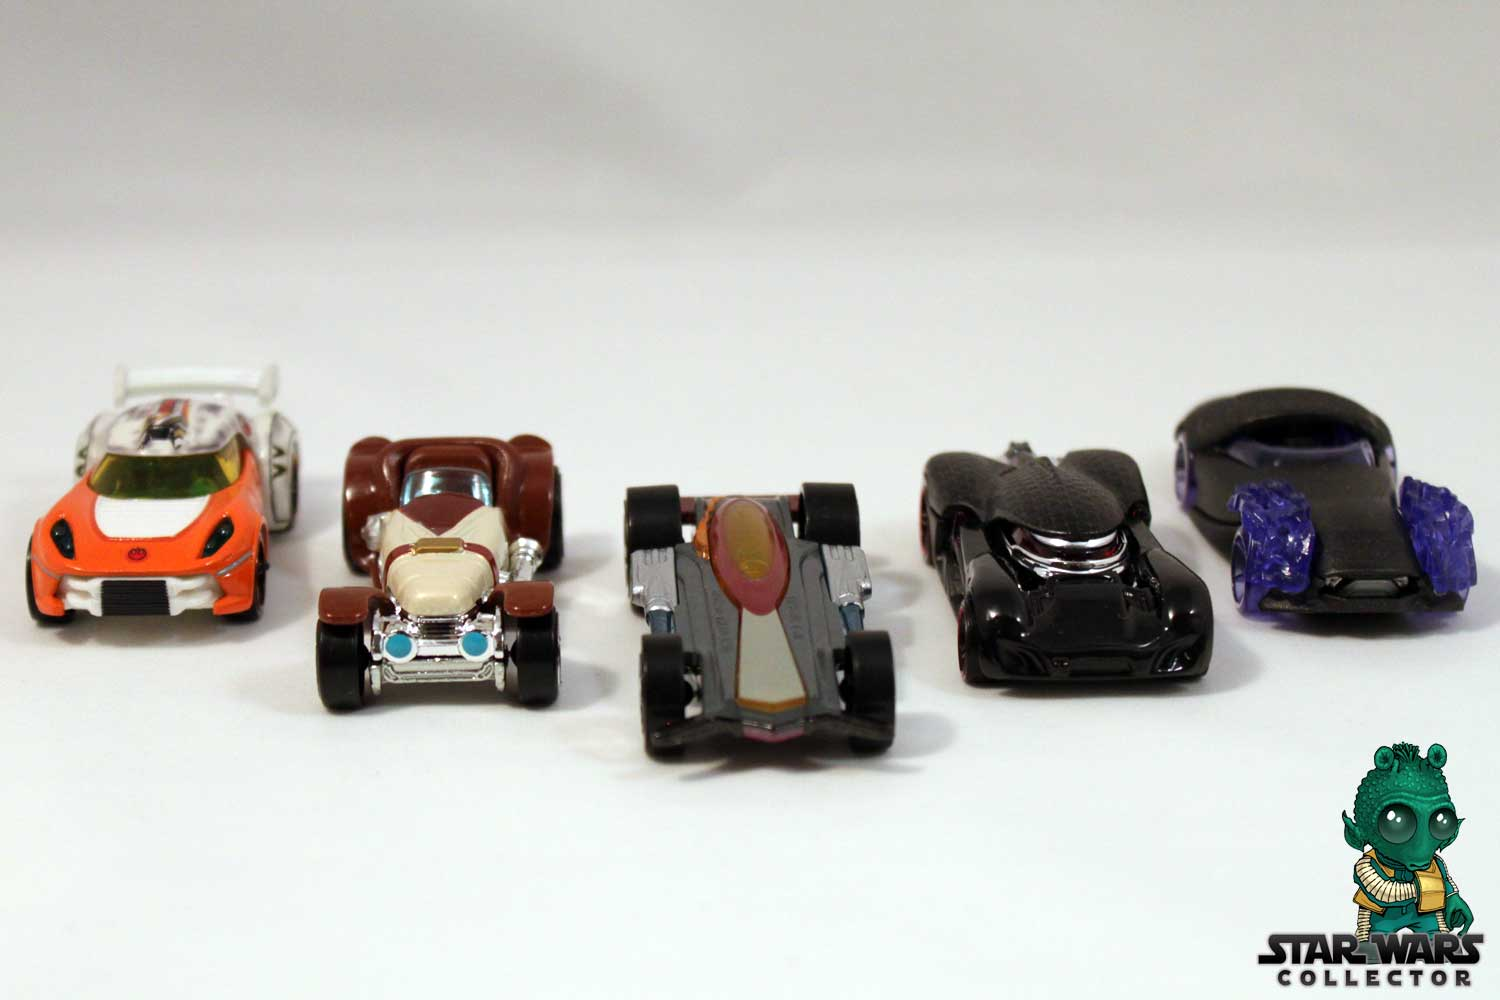 Hot Weels Character Cars 5-Pack – Dark Side vs. Light Side